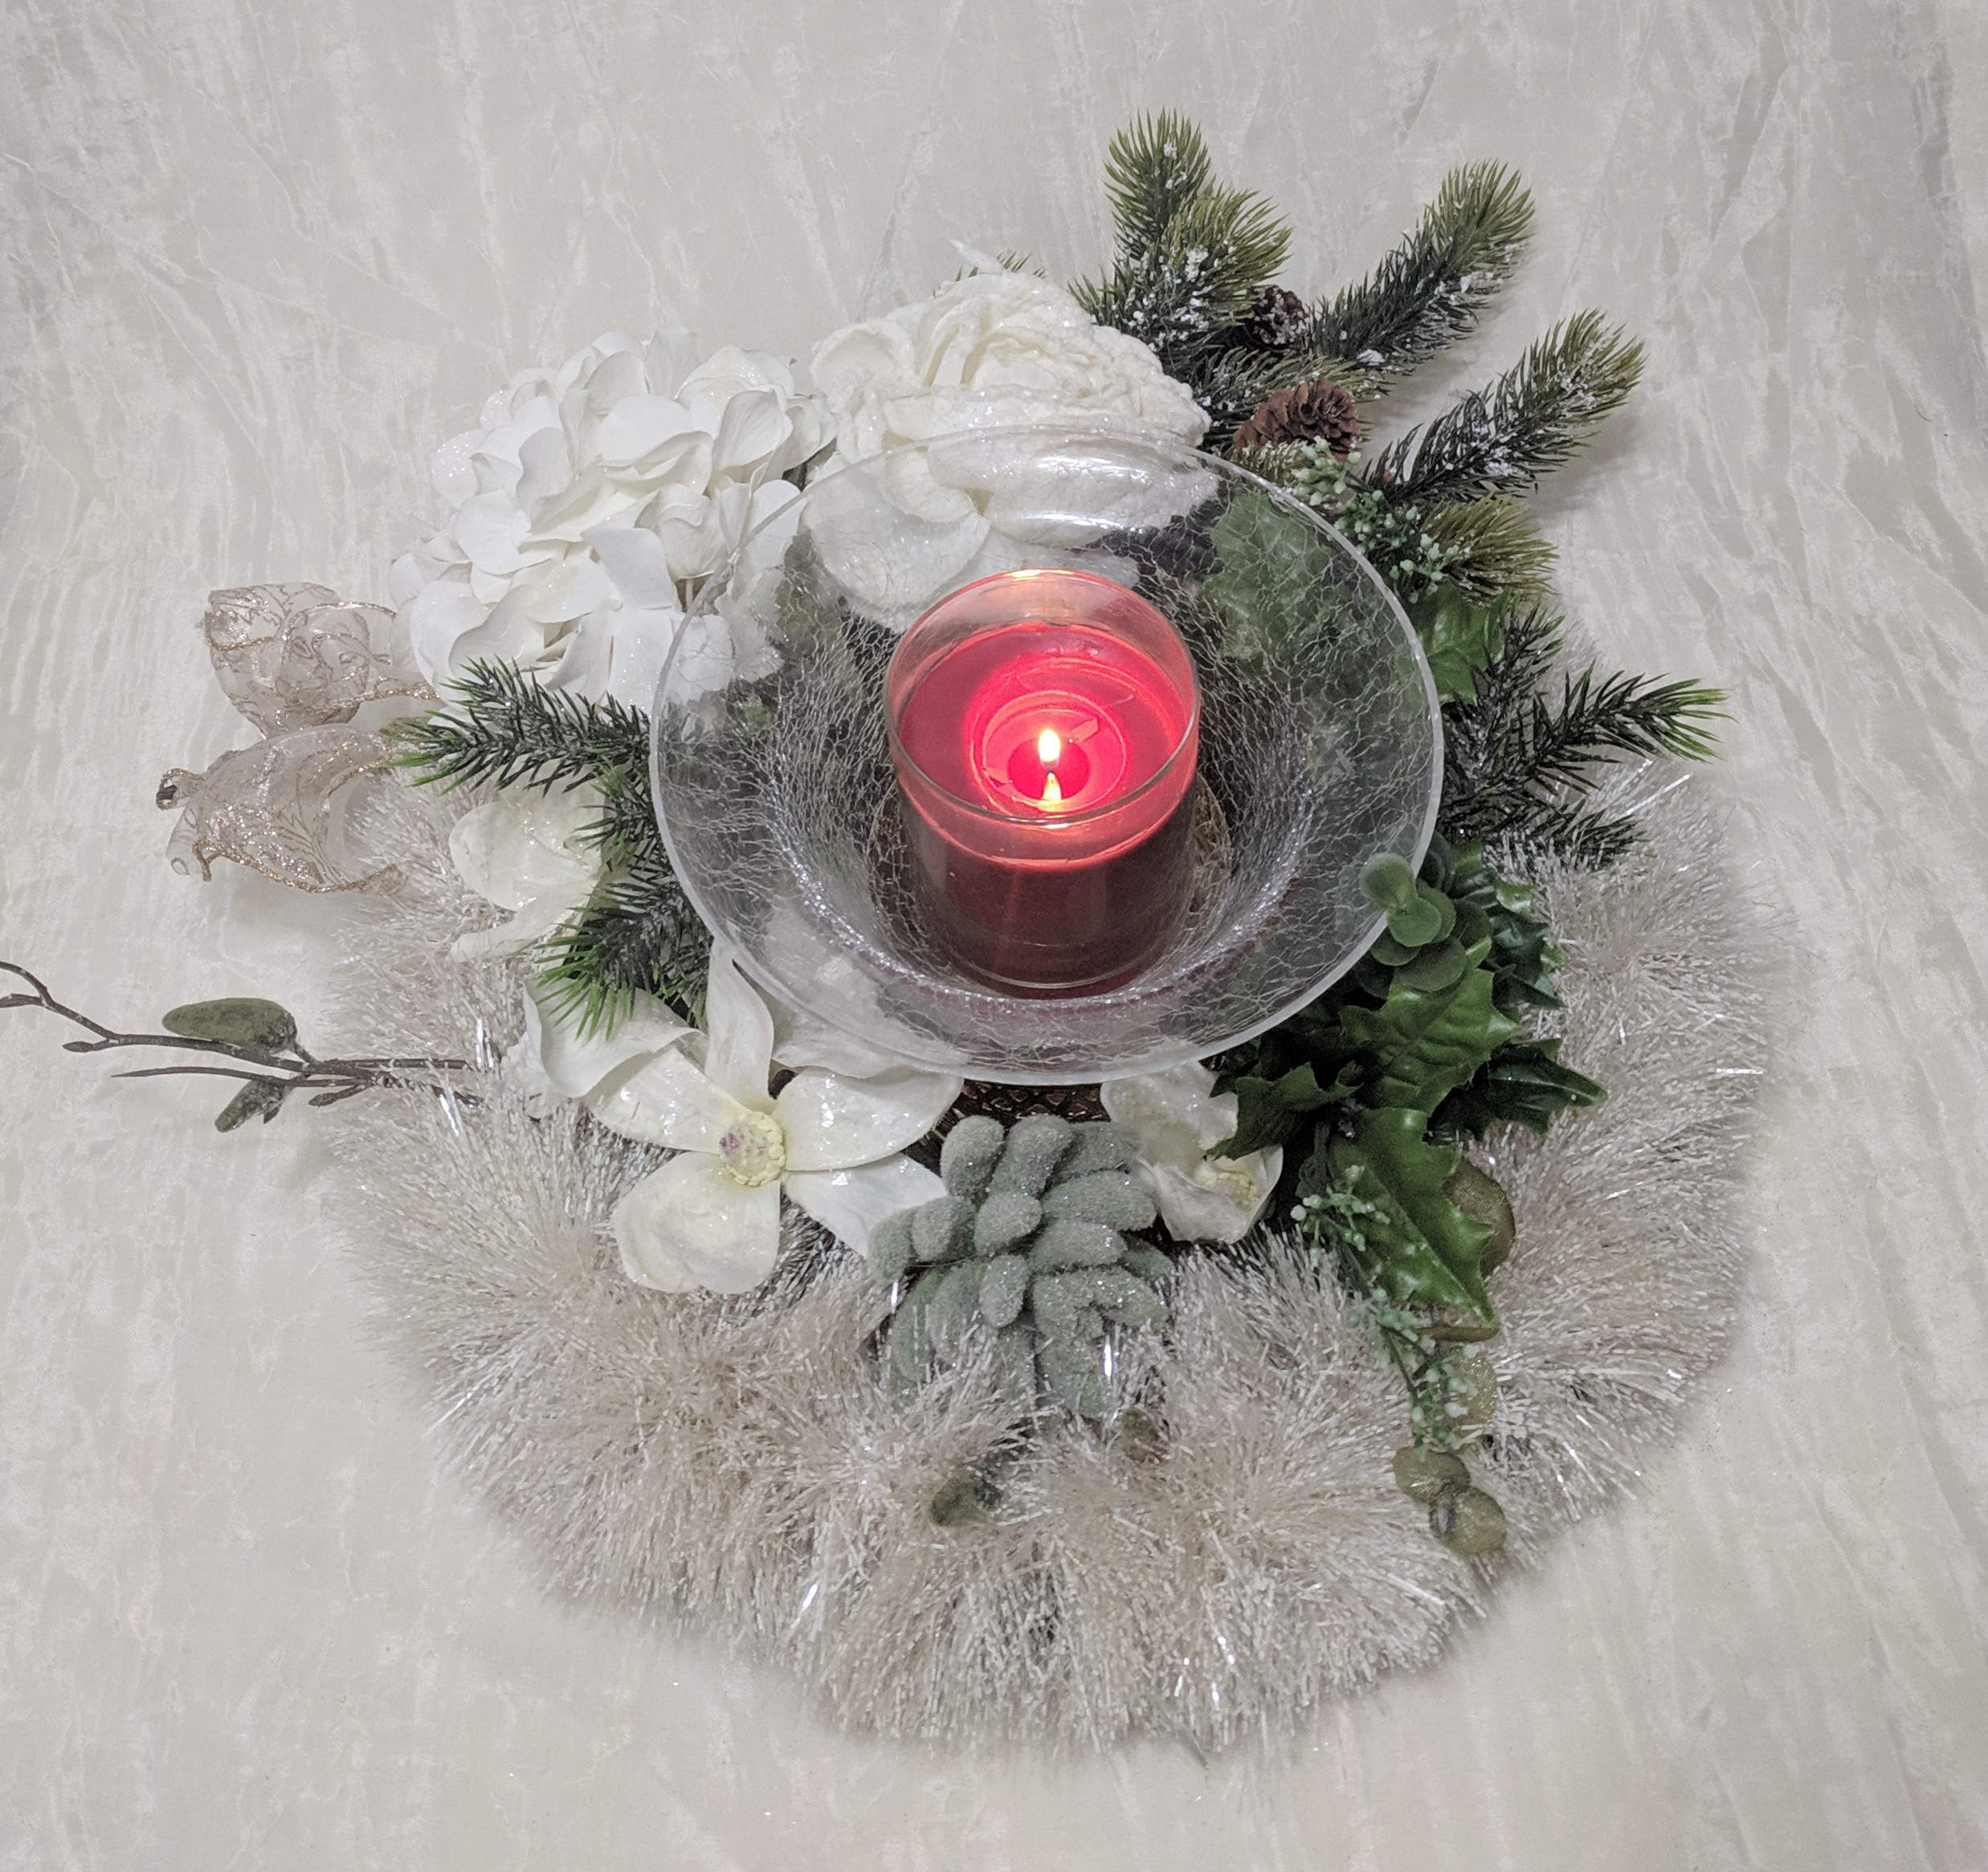 Strike A Festive Glow - Red candle in a jar set in a crackled glass holder, swathed in faux evergreens, pine-cones and silk flowers.